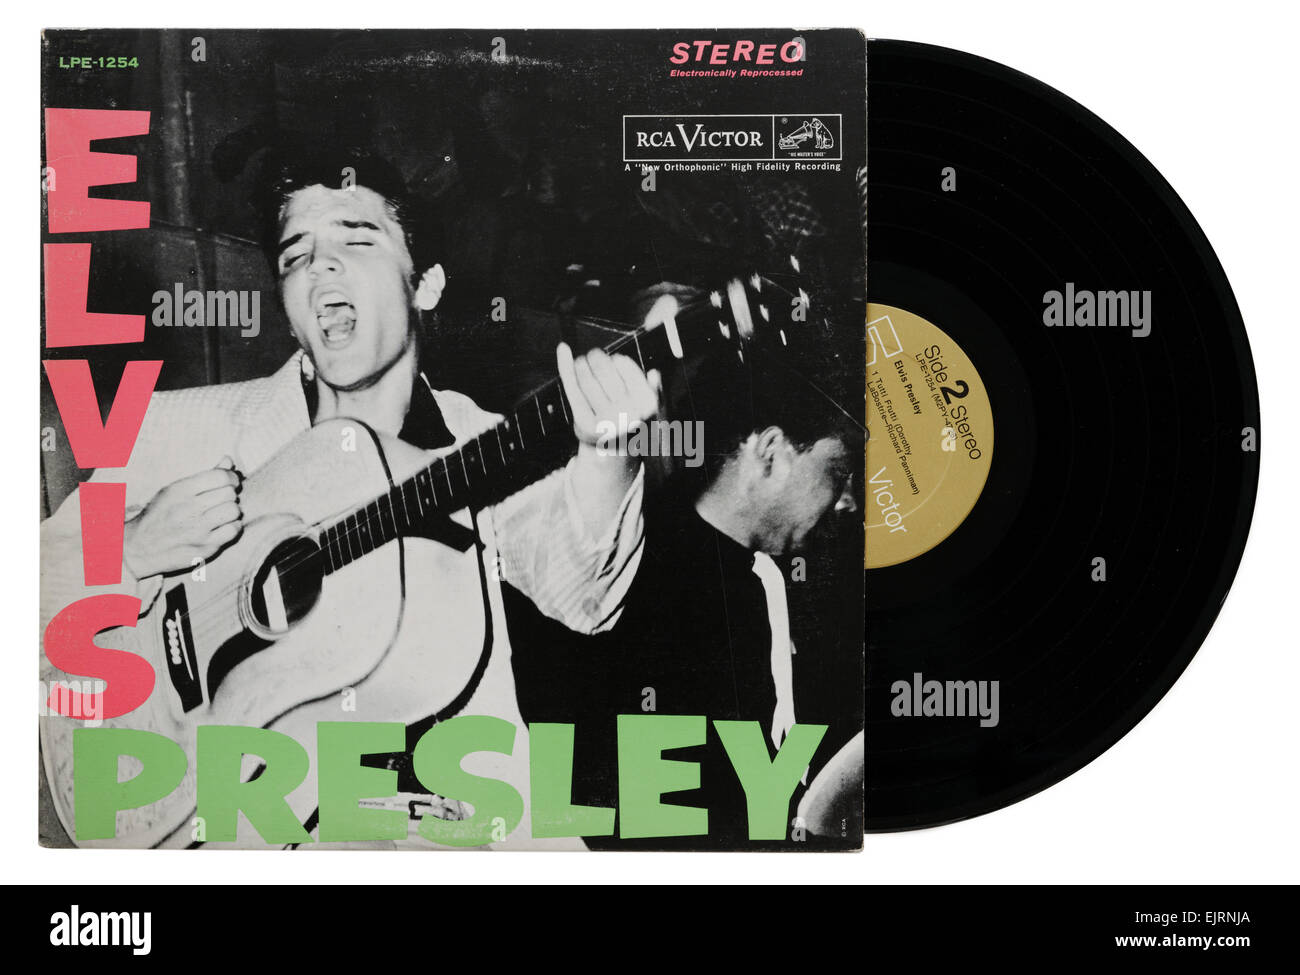 Elvis Presley's first album, with the sleeve design used by The Clash for their iconic London Calling album - Stock Image